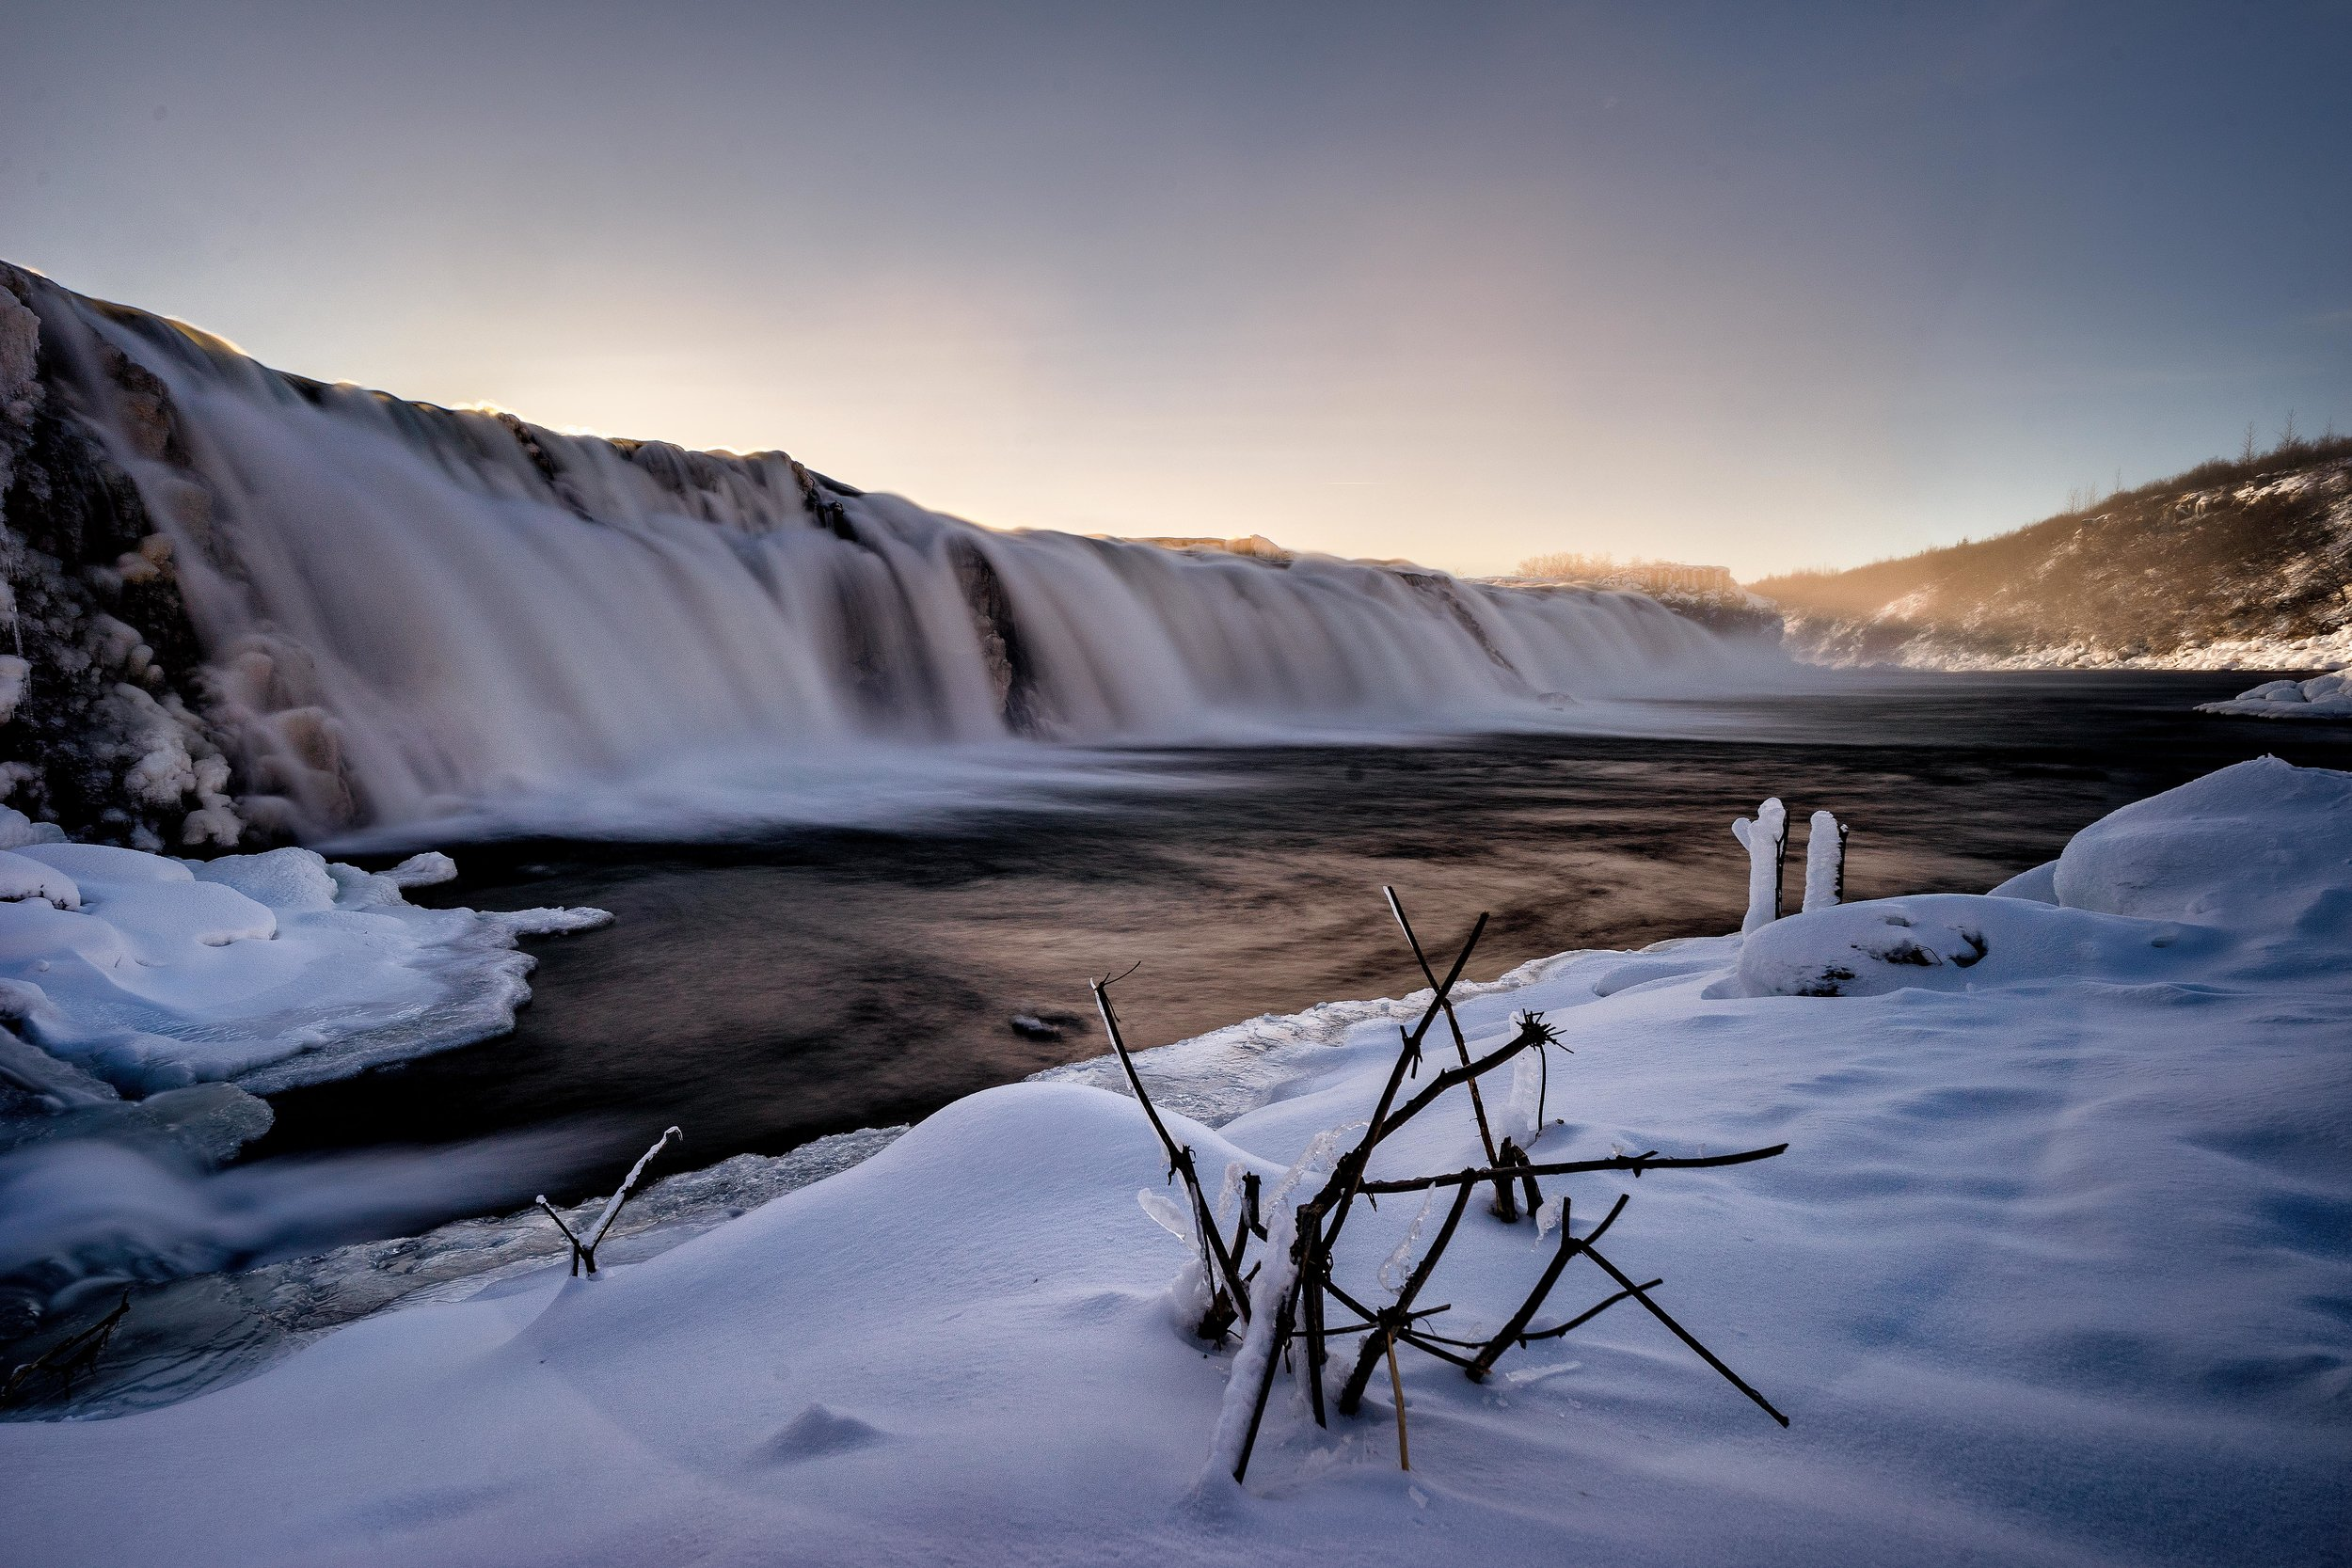 Iceland. snow. travel. adventure. photography. trip. epic landscape. snow. cold. freezing. sunrise. faxifoss. long exposure.jpg